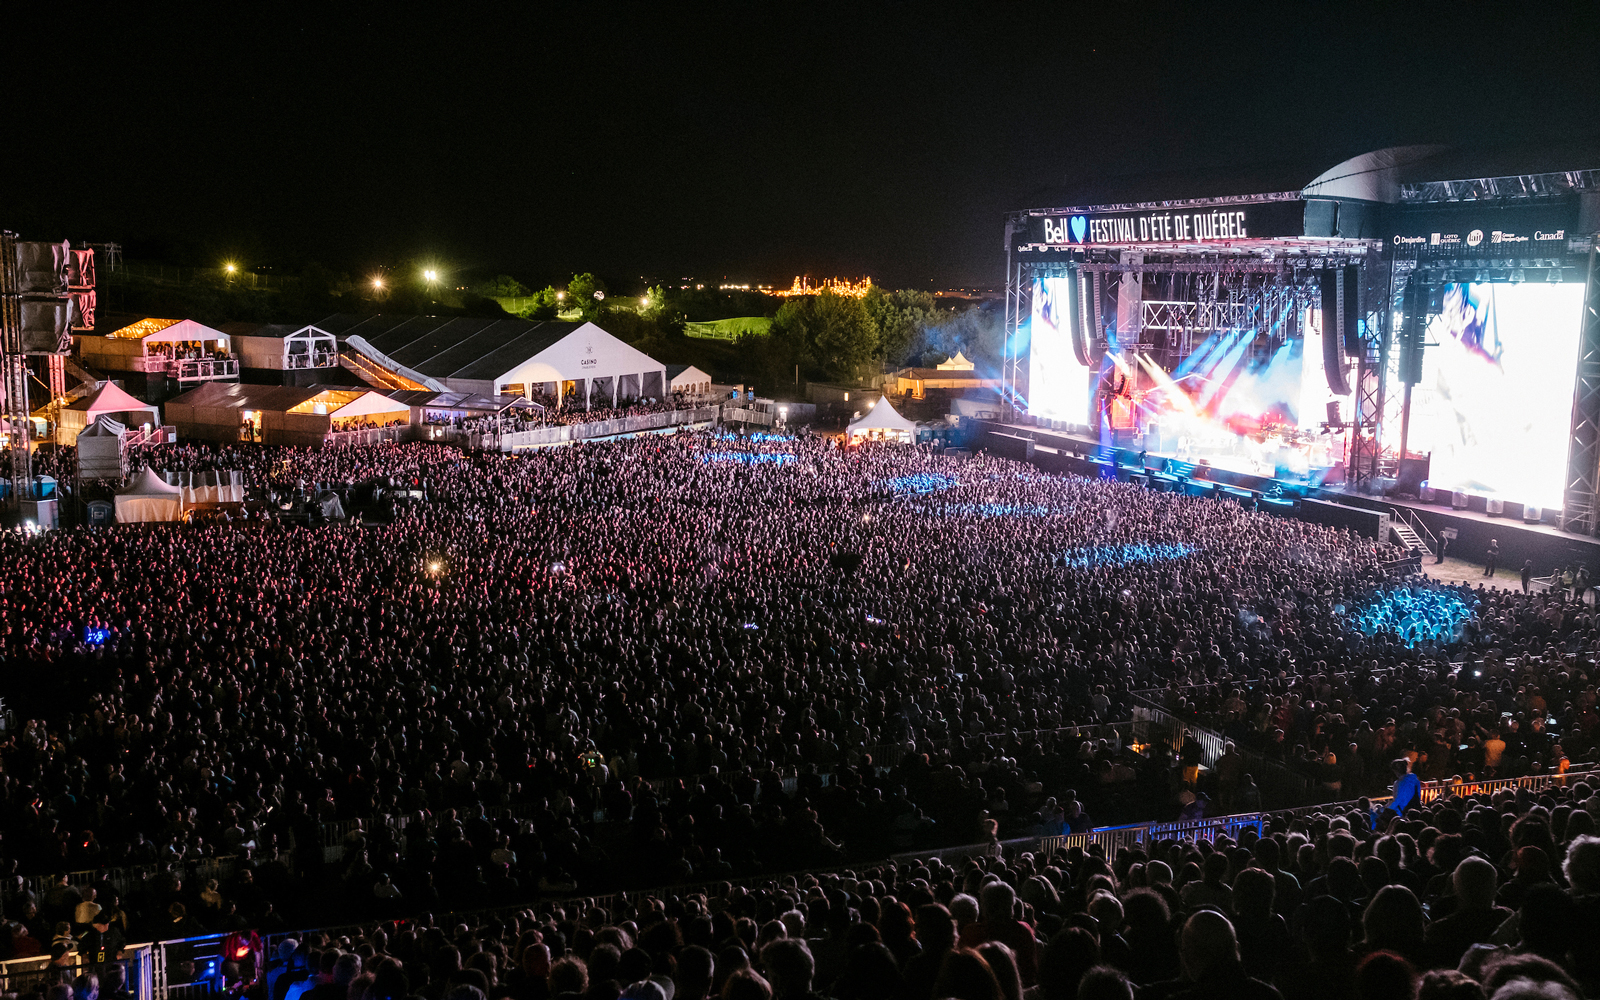 The Best Music Festival You've Never Heard Costs Only $80 to Attend